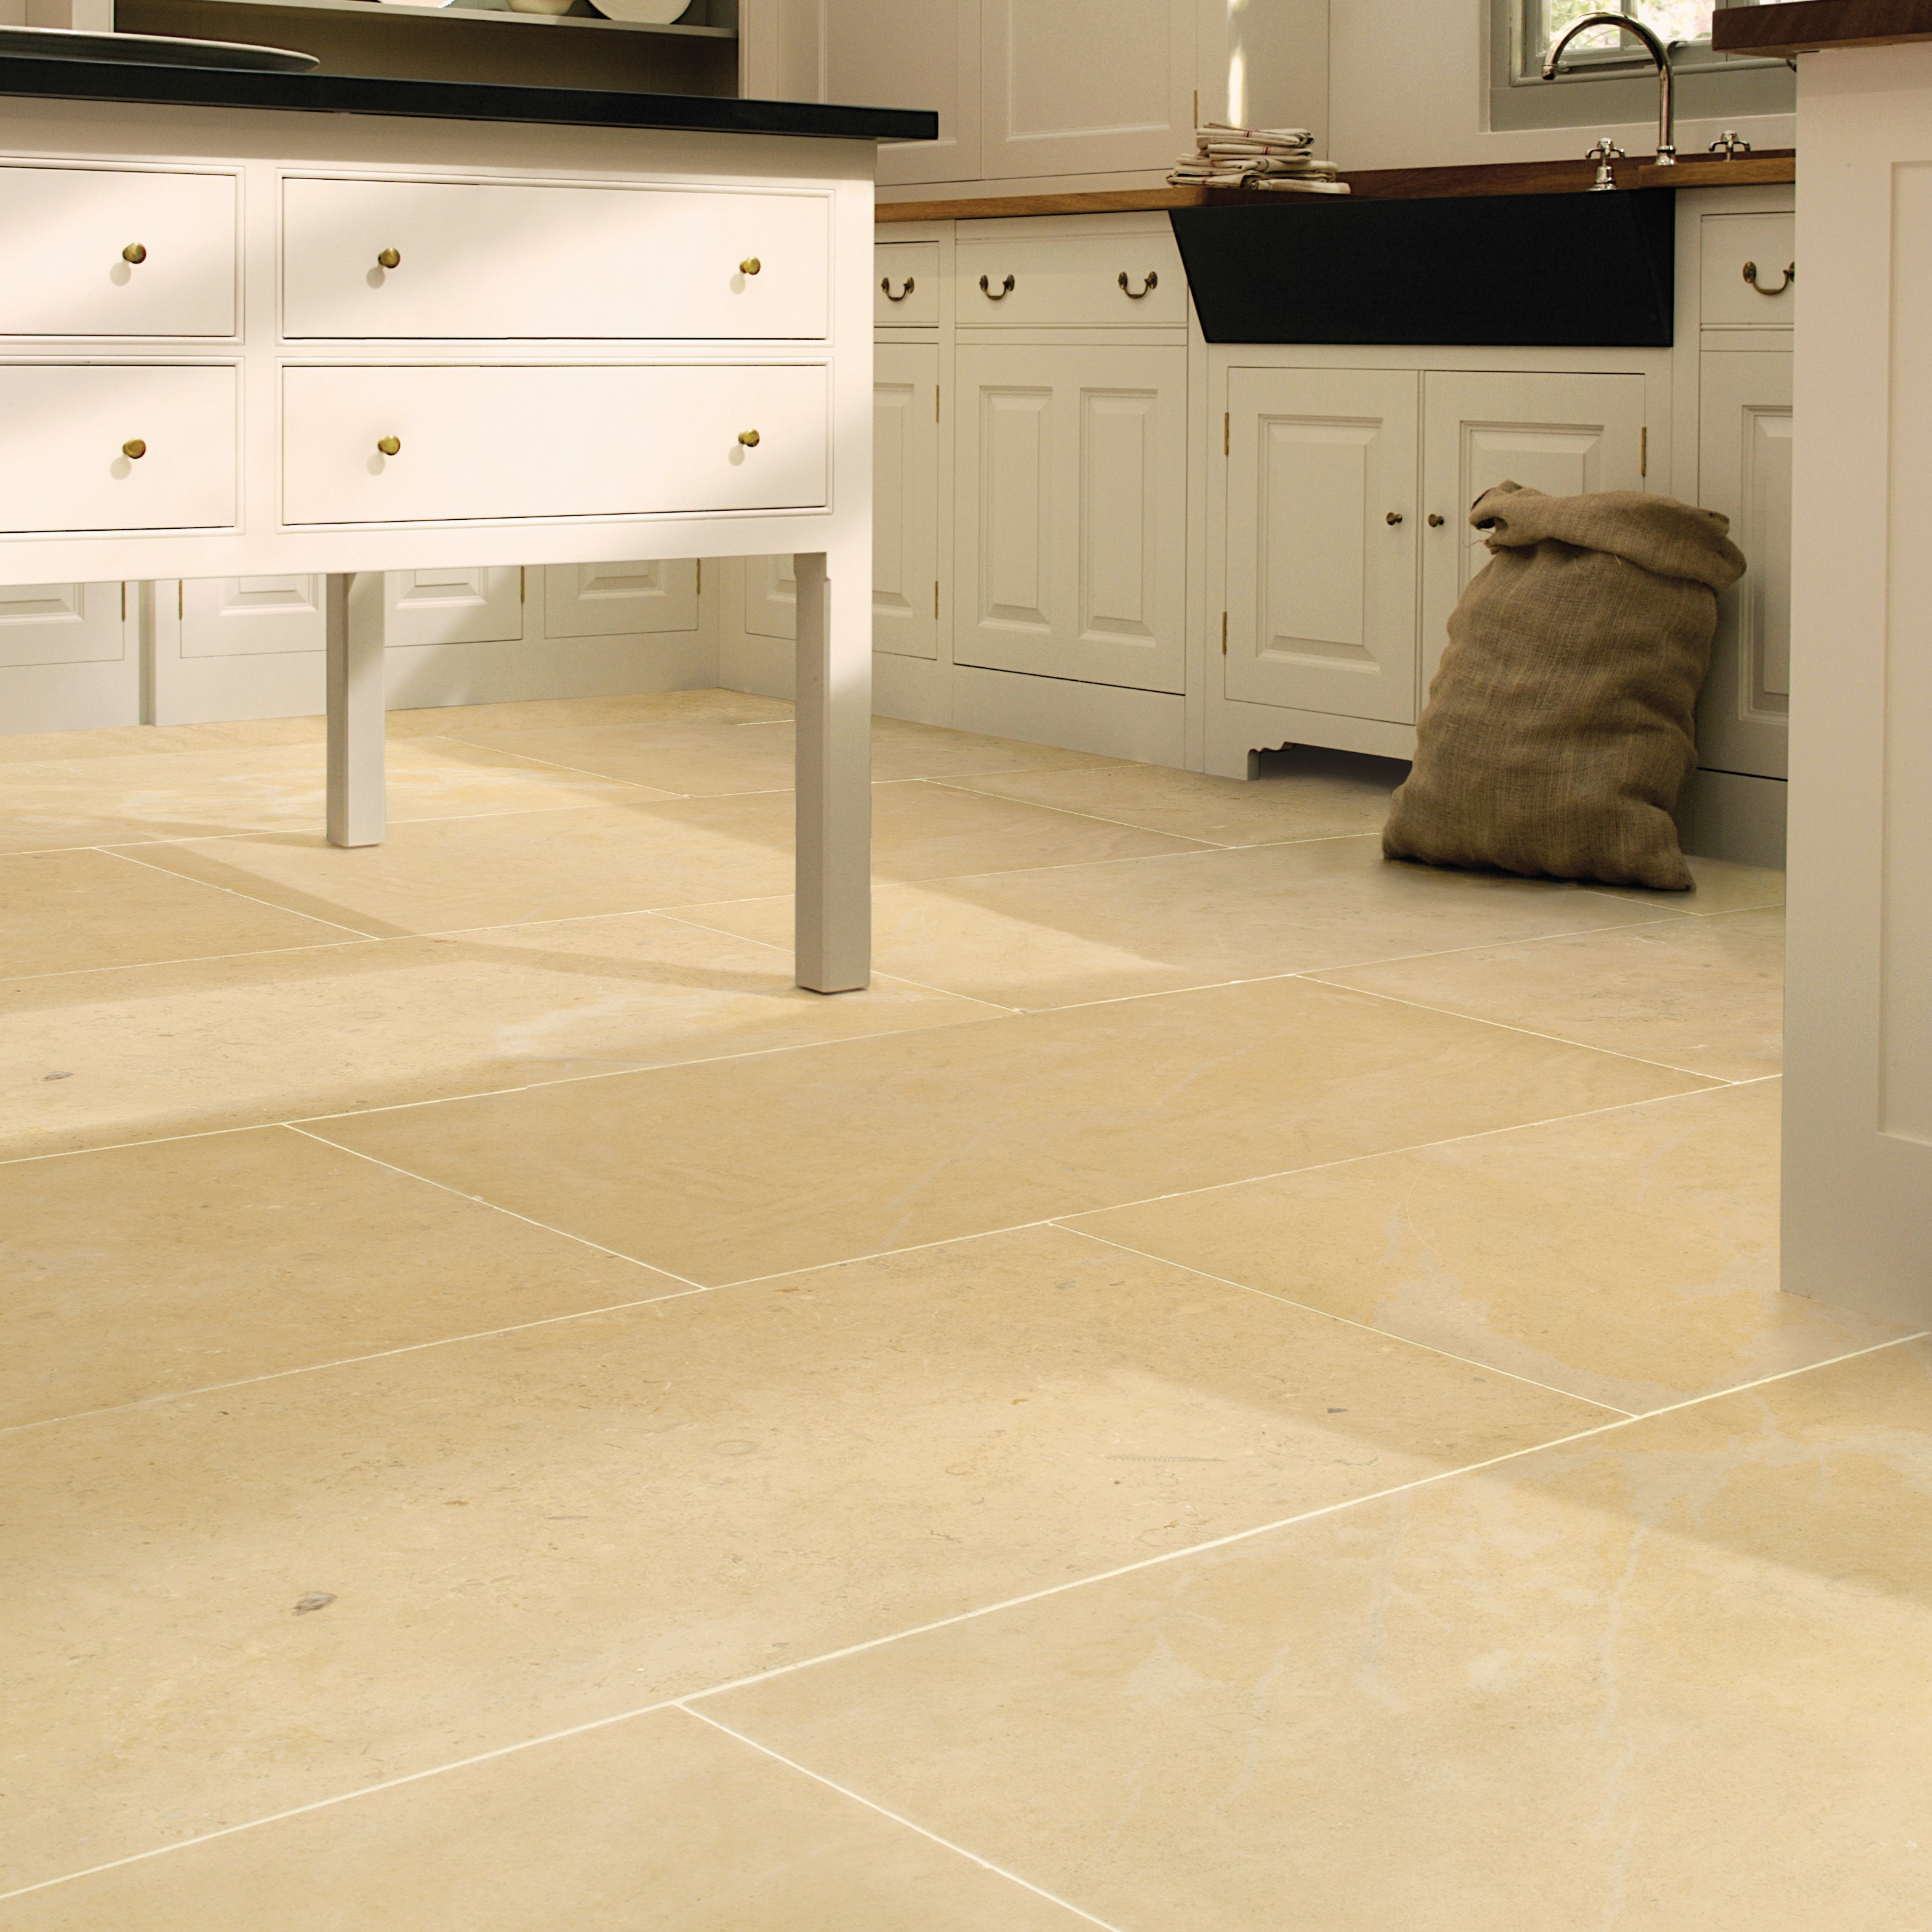 Kitchen Tiles Edinburgh ca' pietra limestone, neranjo (honed) | edinburgh tile studio